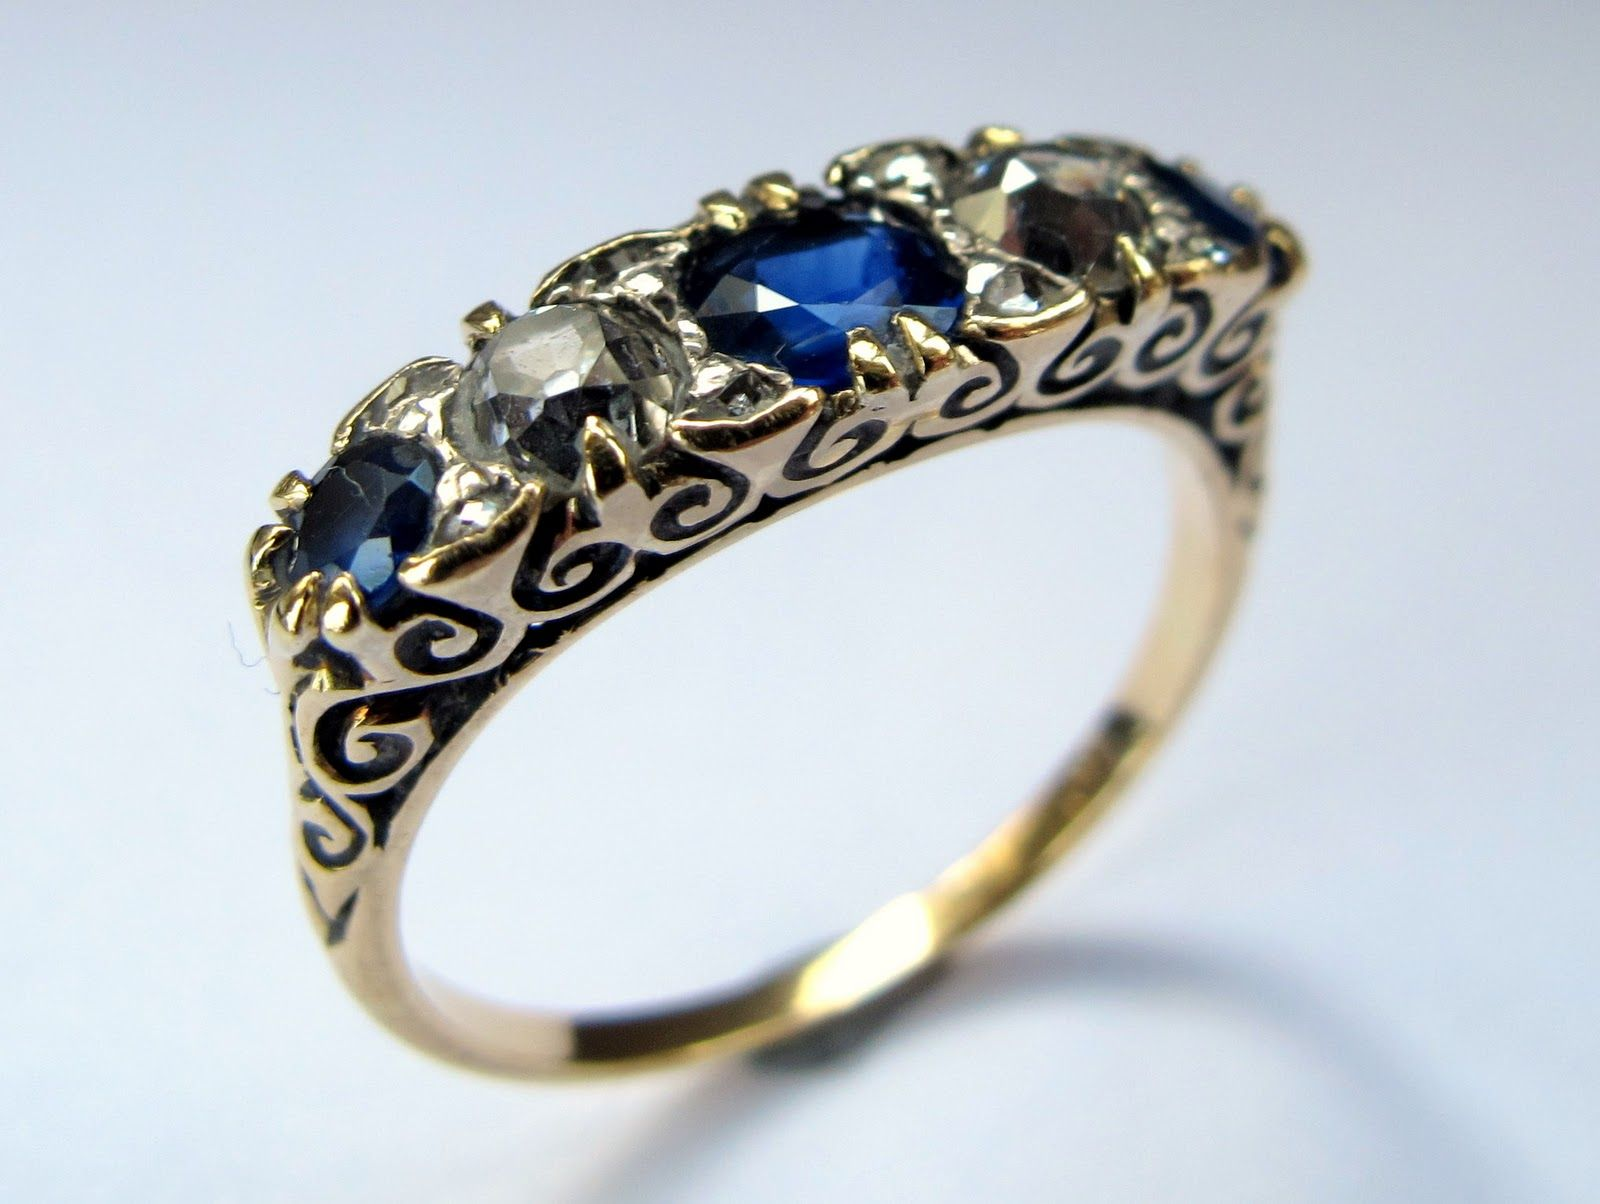 beautiful rings in the world | Gemstone Shape and Cut | Pinterest ...